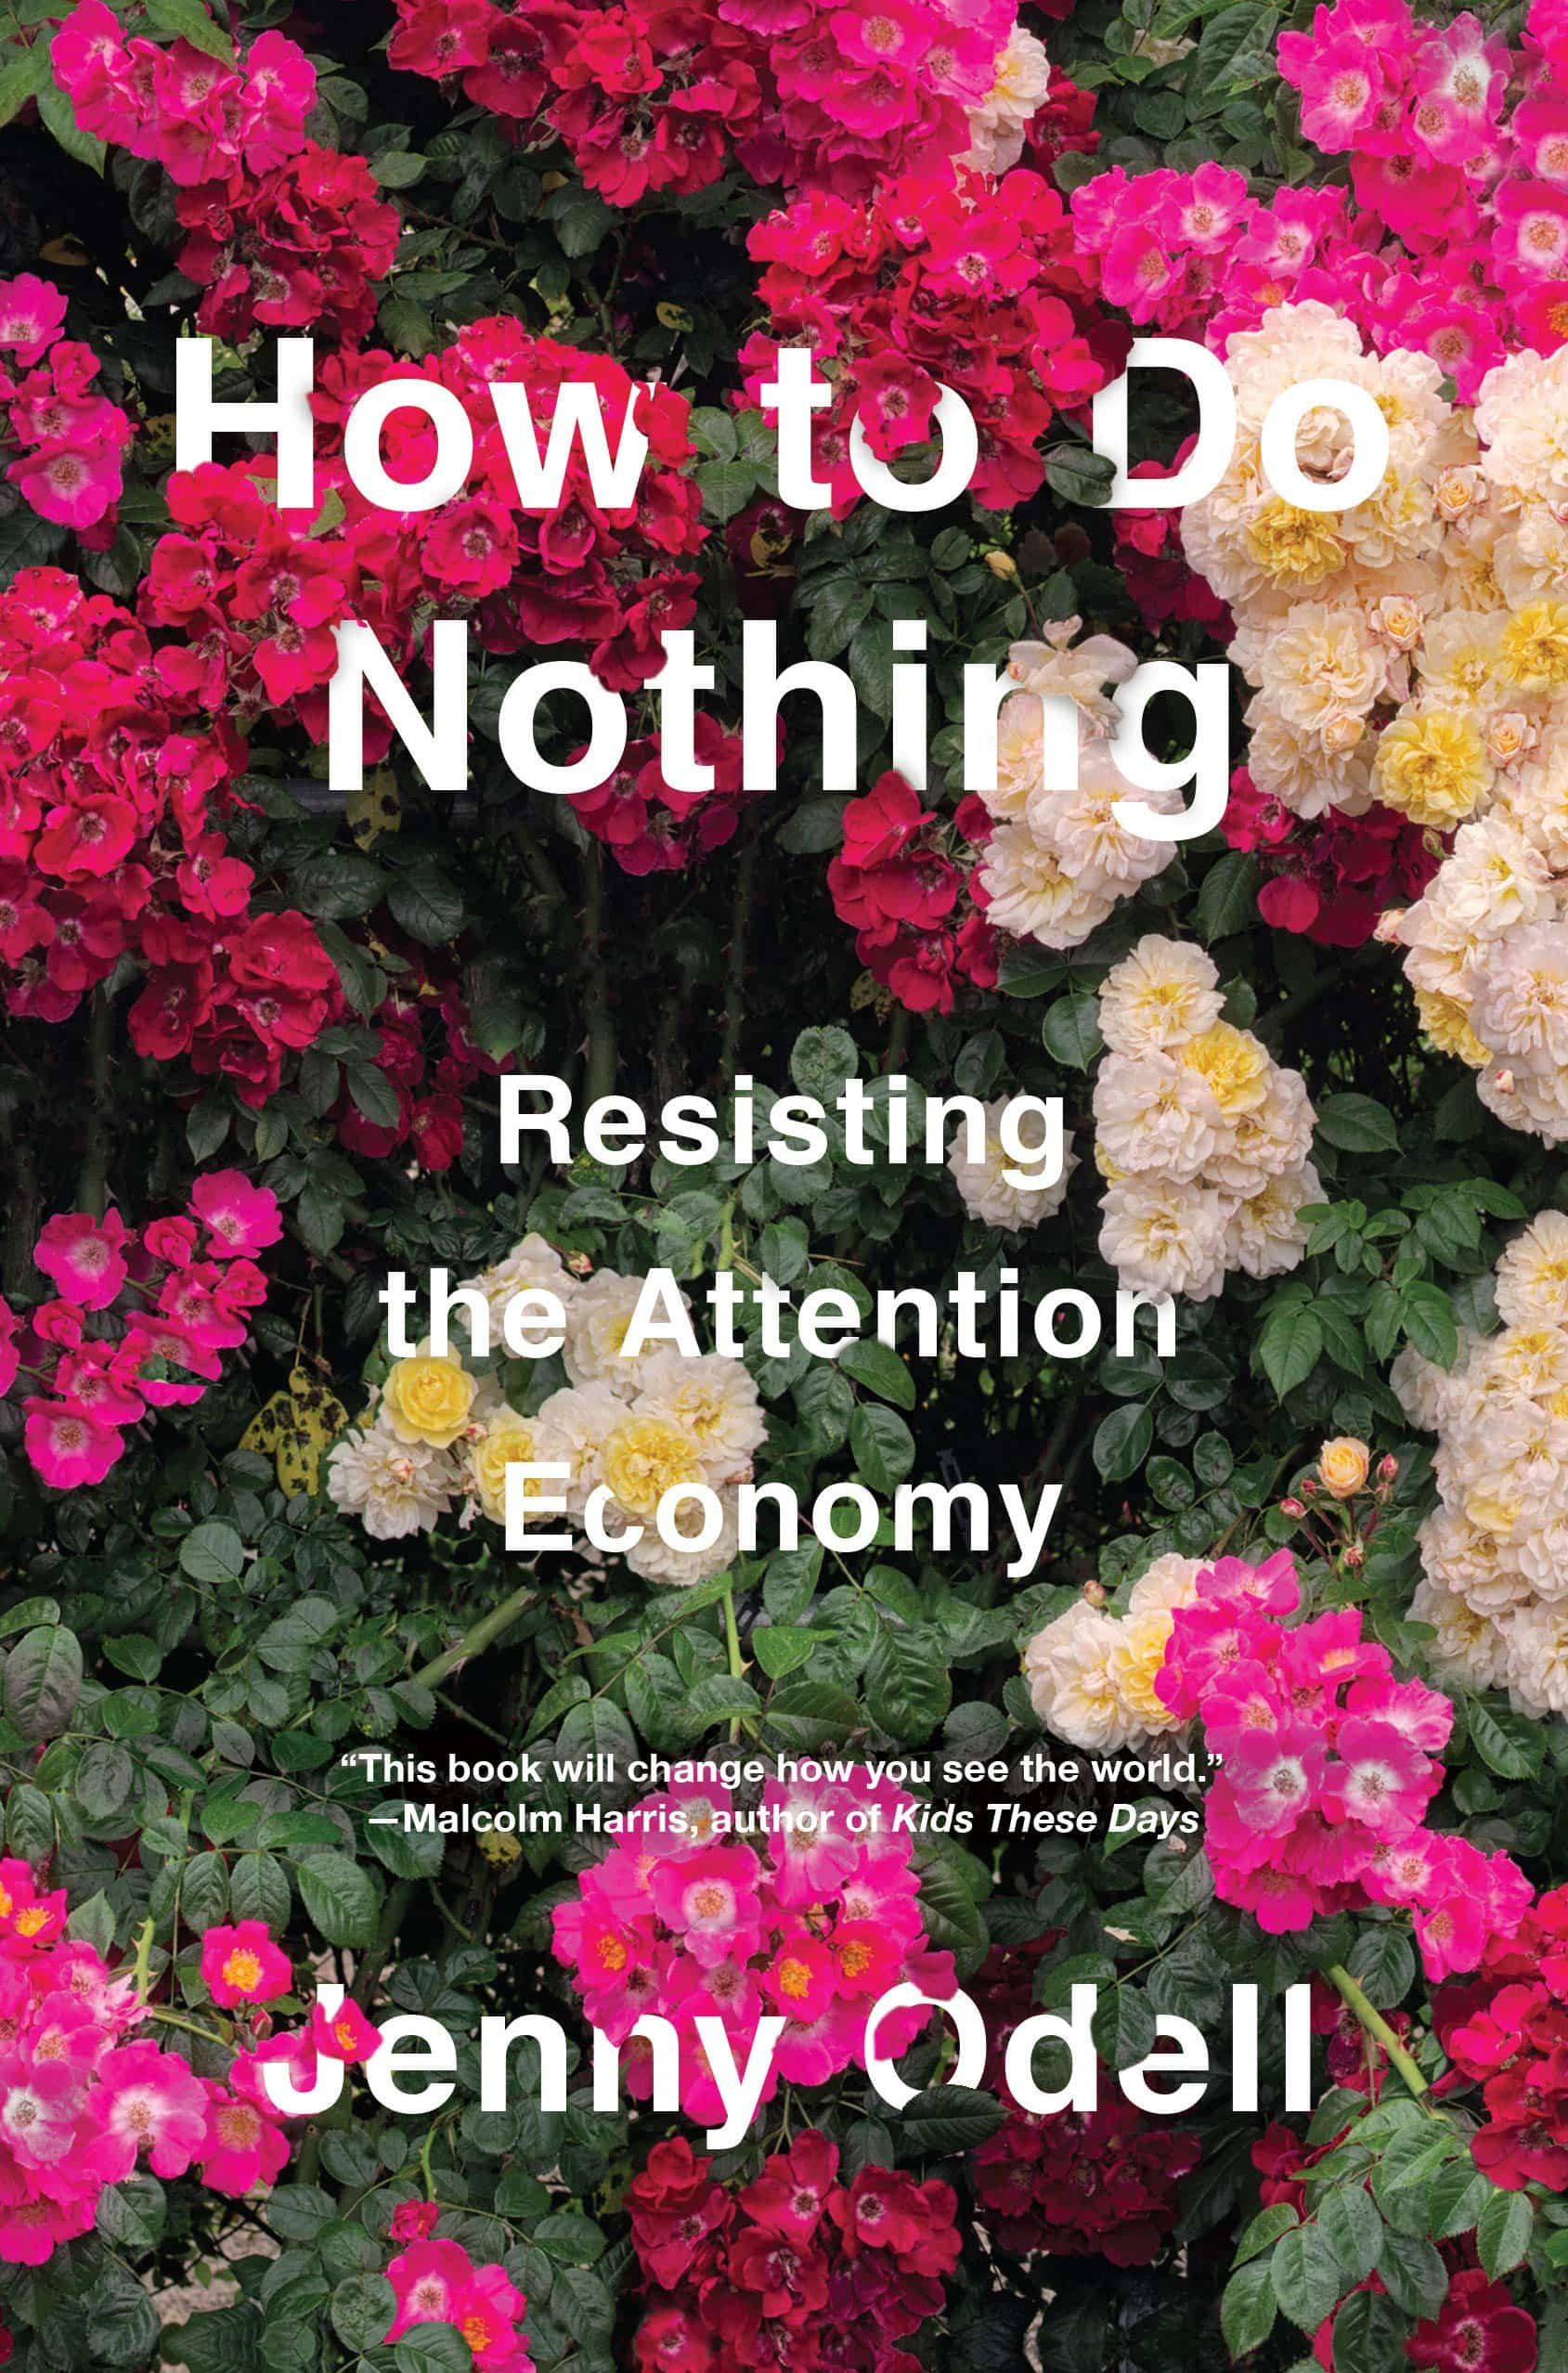 The cover of How to Do Nothing